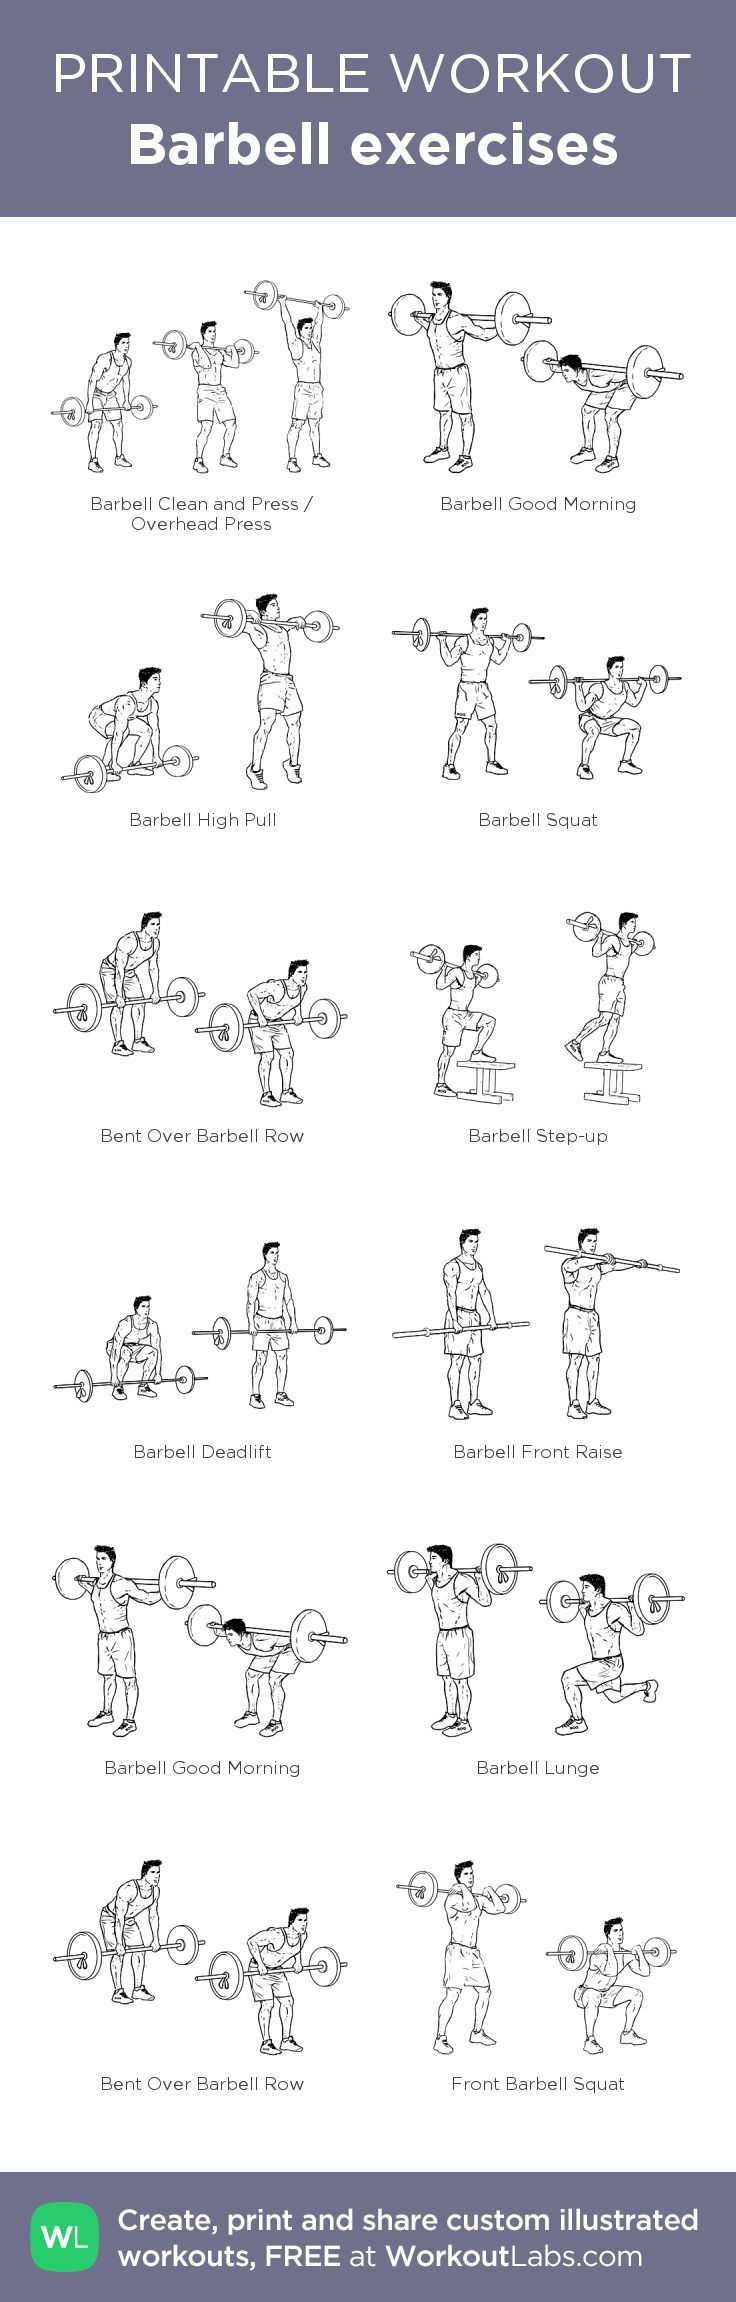 Barbell exercises: my visual workout created at http://WorkoutLabs.com • Click through to customize and download as a FREE PDF! #customworkout